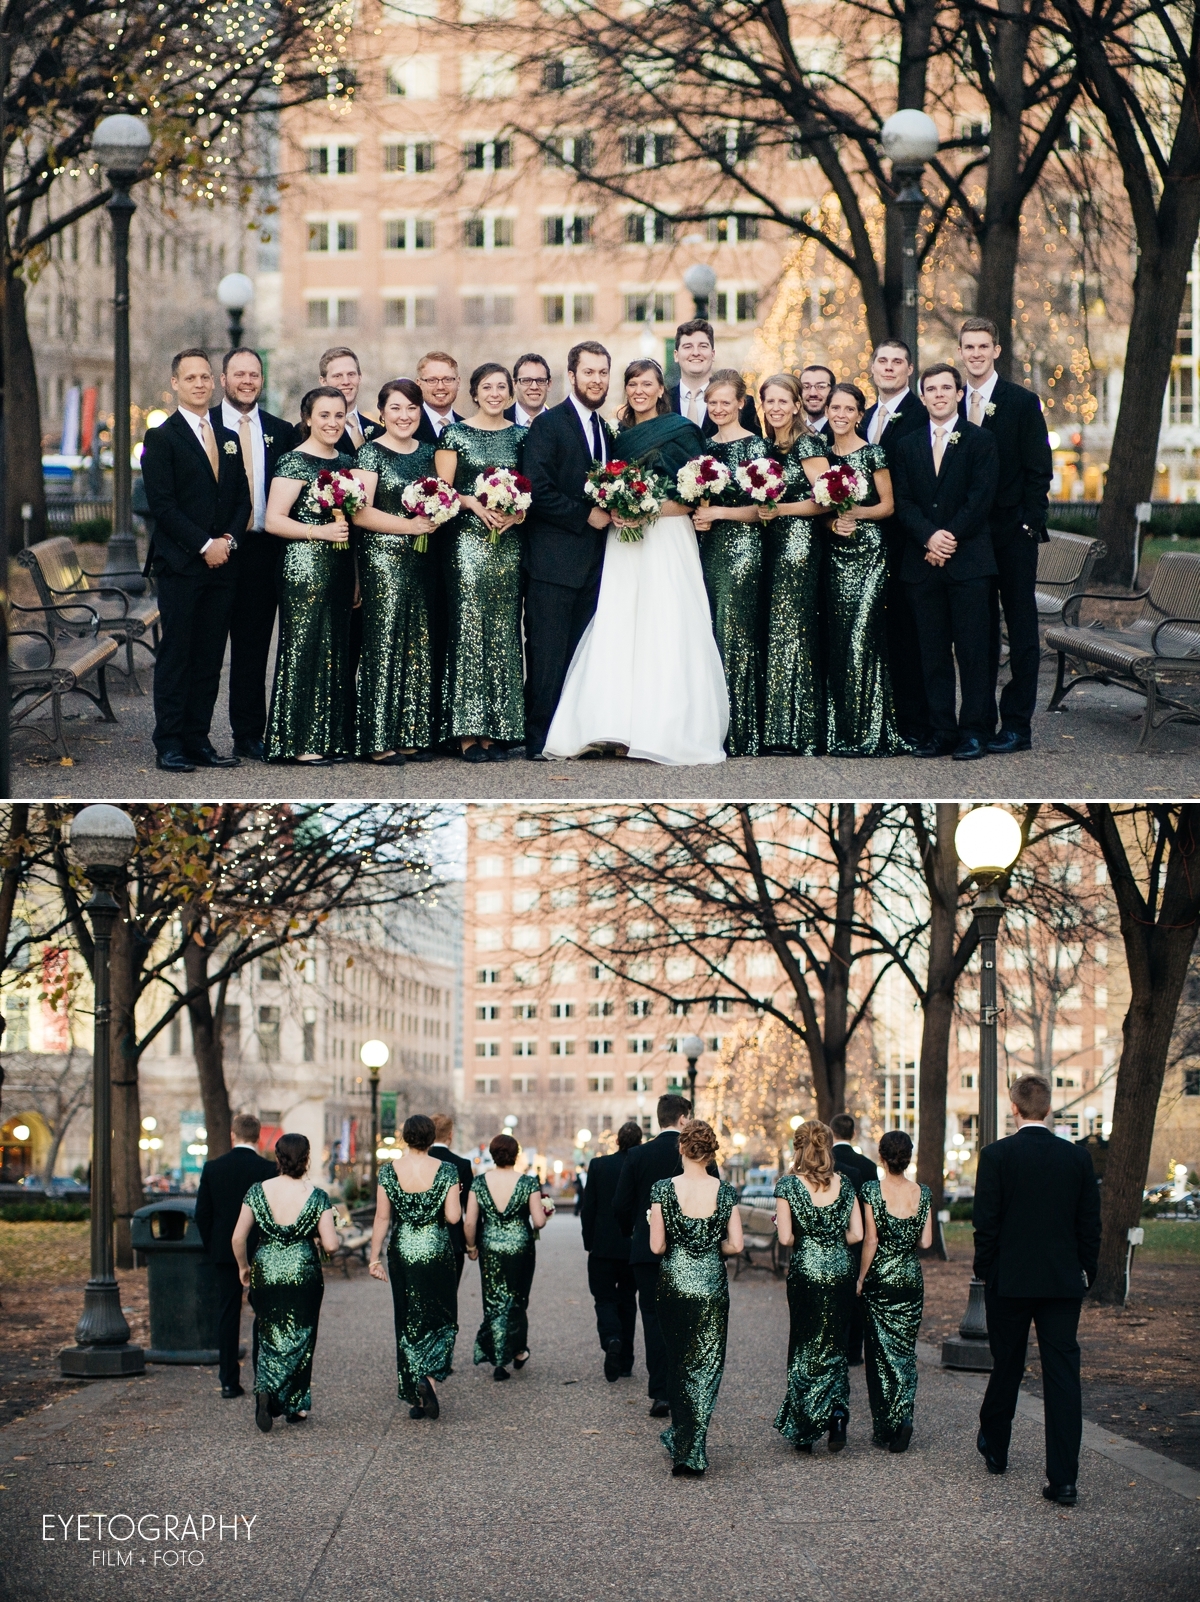 St. Paul Wedding Photography | Luke + Jean | Eyetography Film + Foto 14